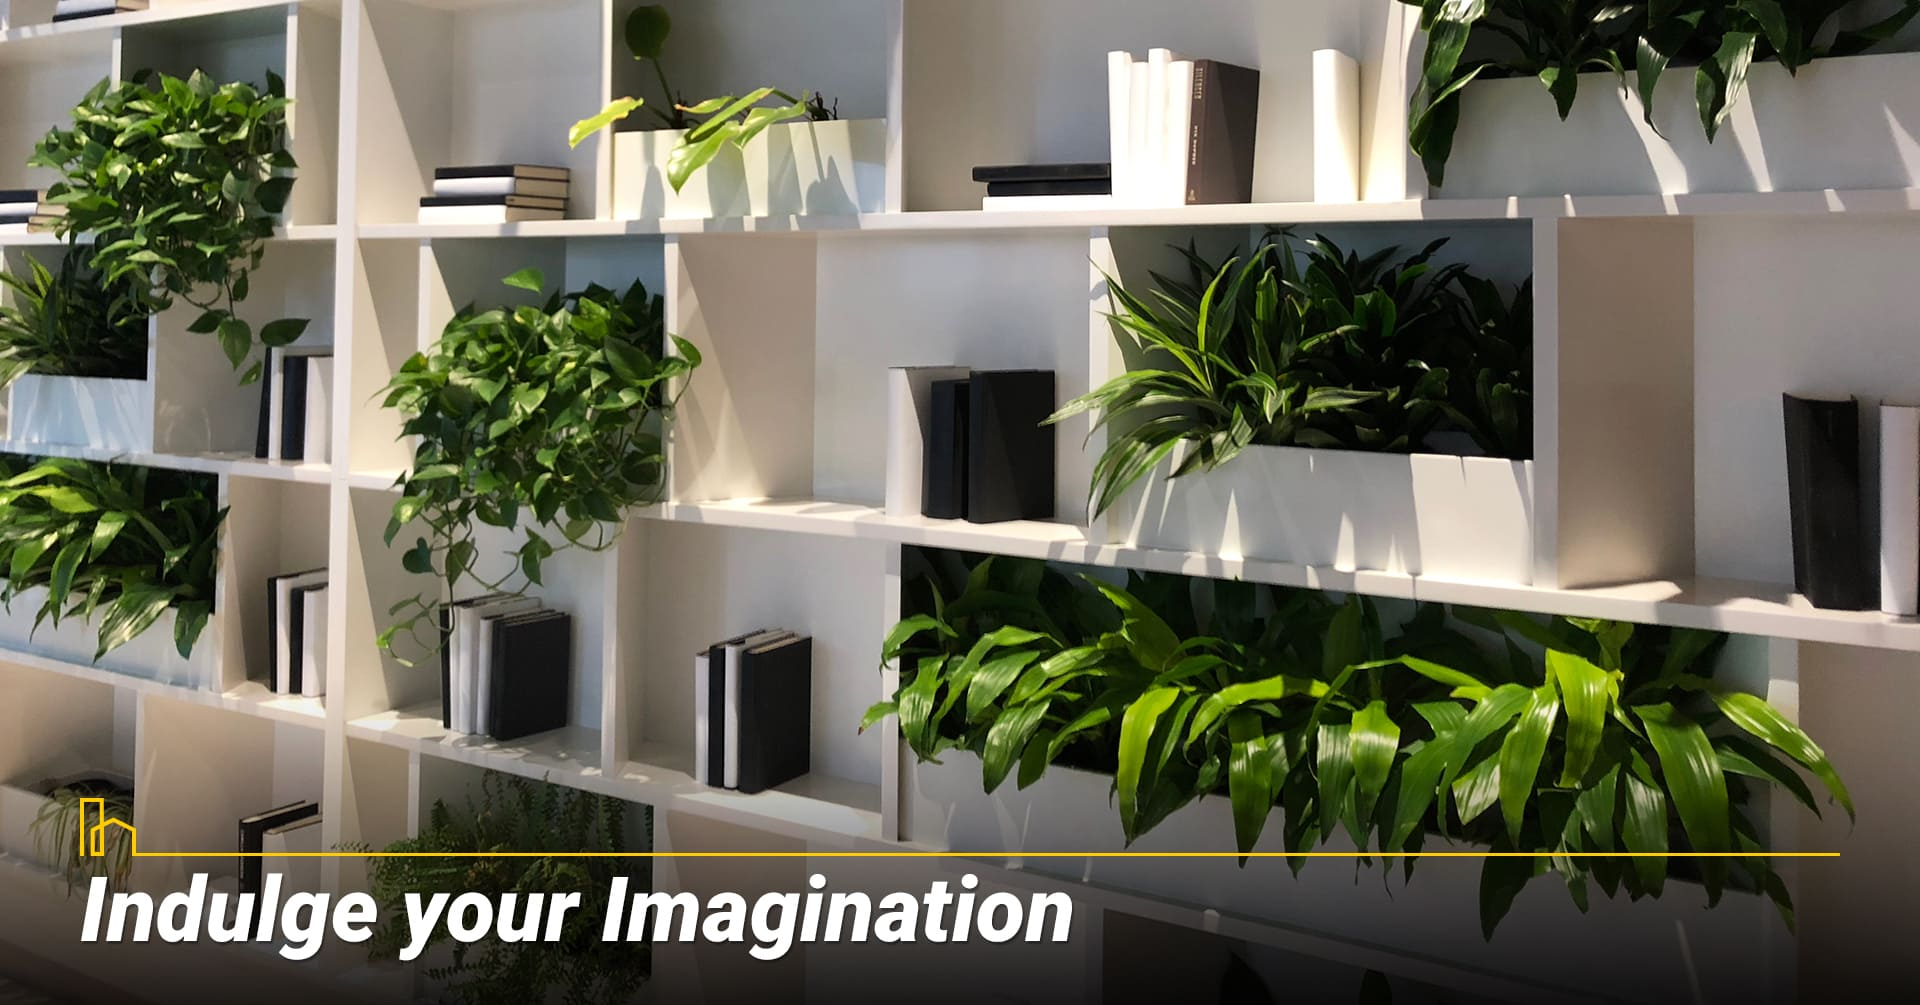 Indulge your Imagination, be creative with your green